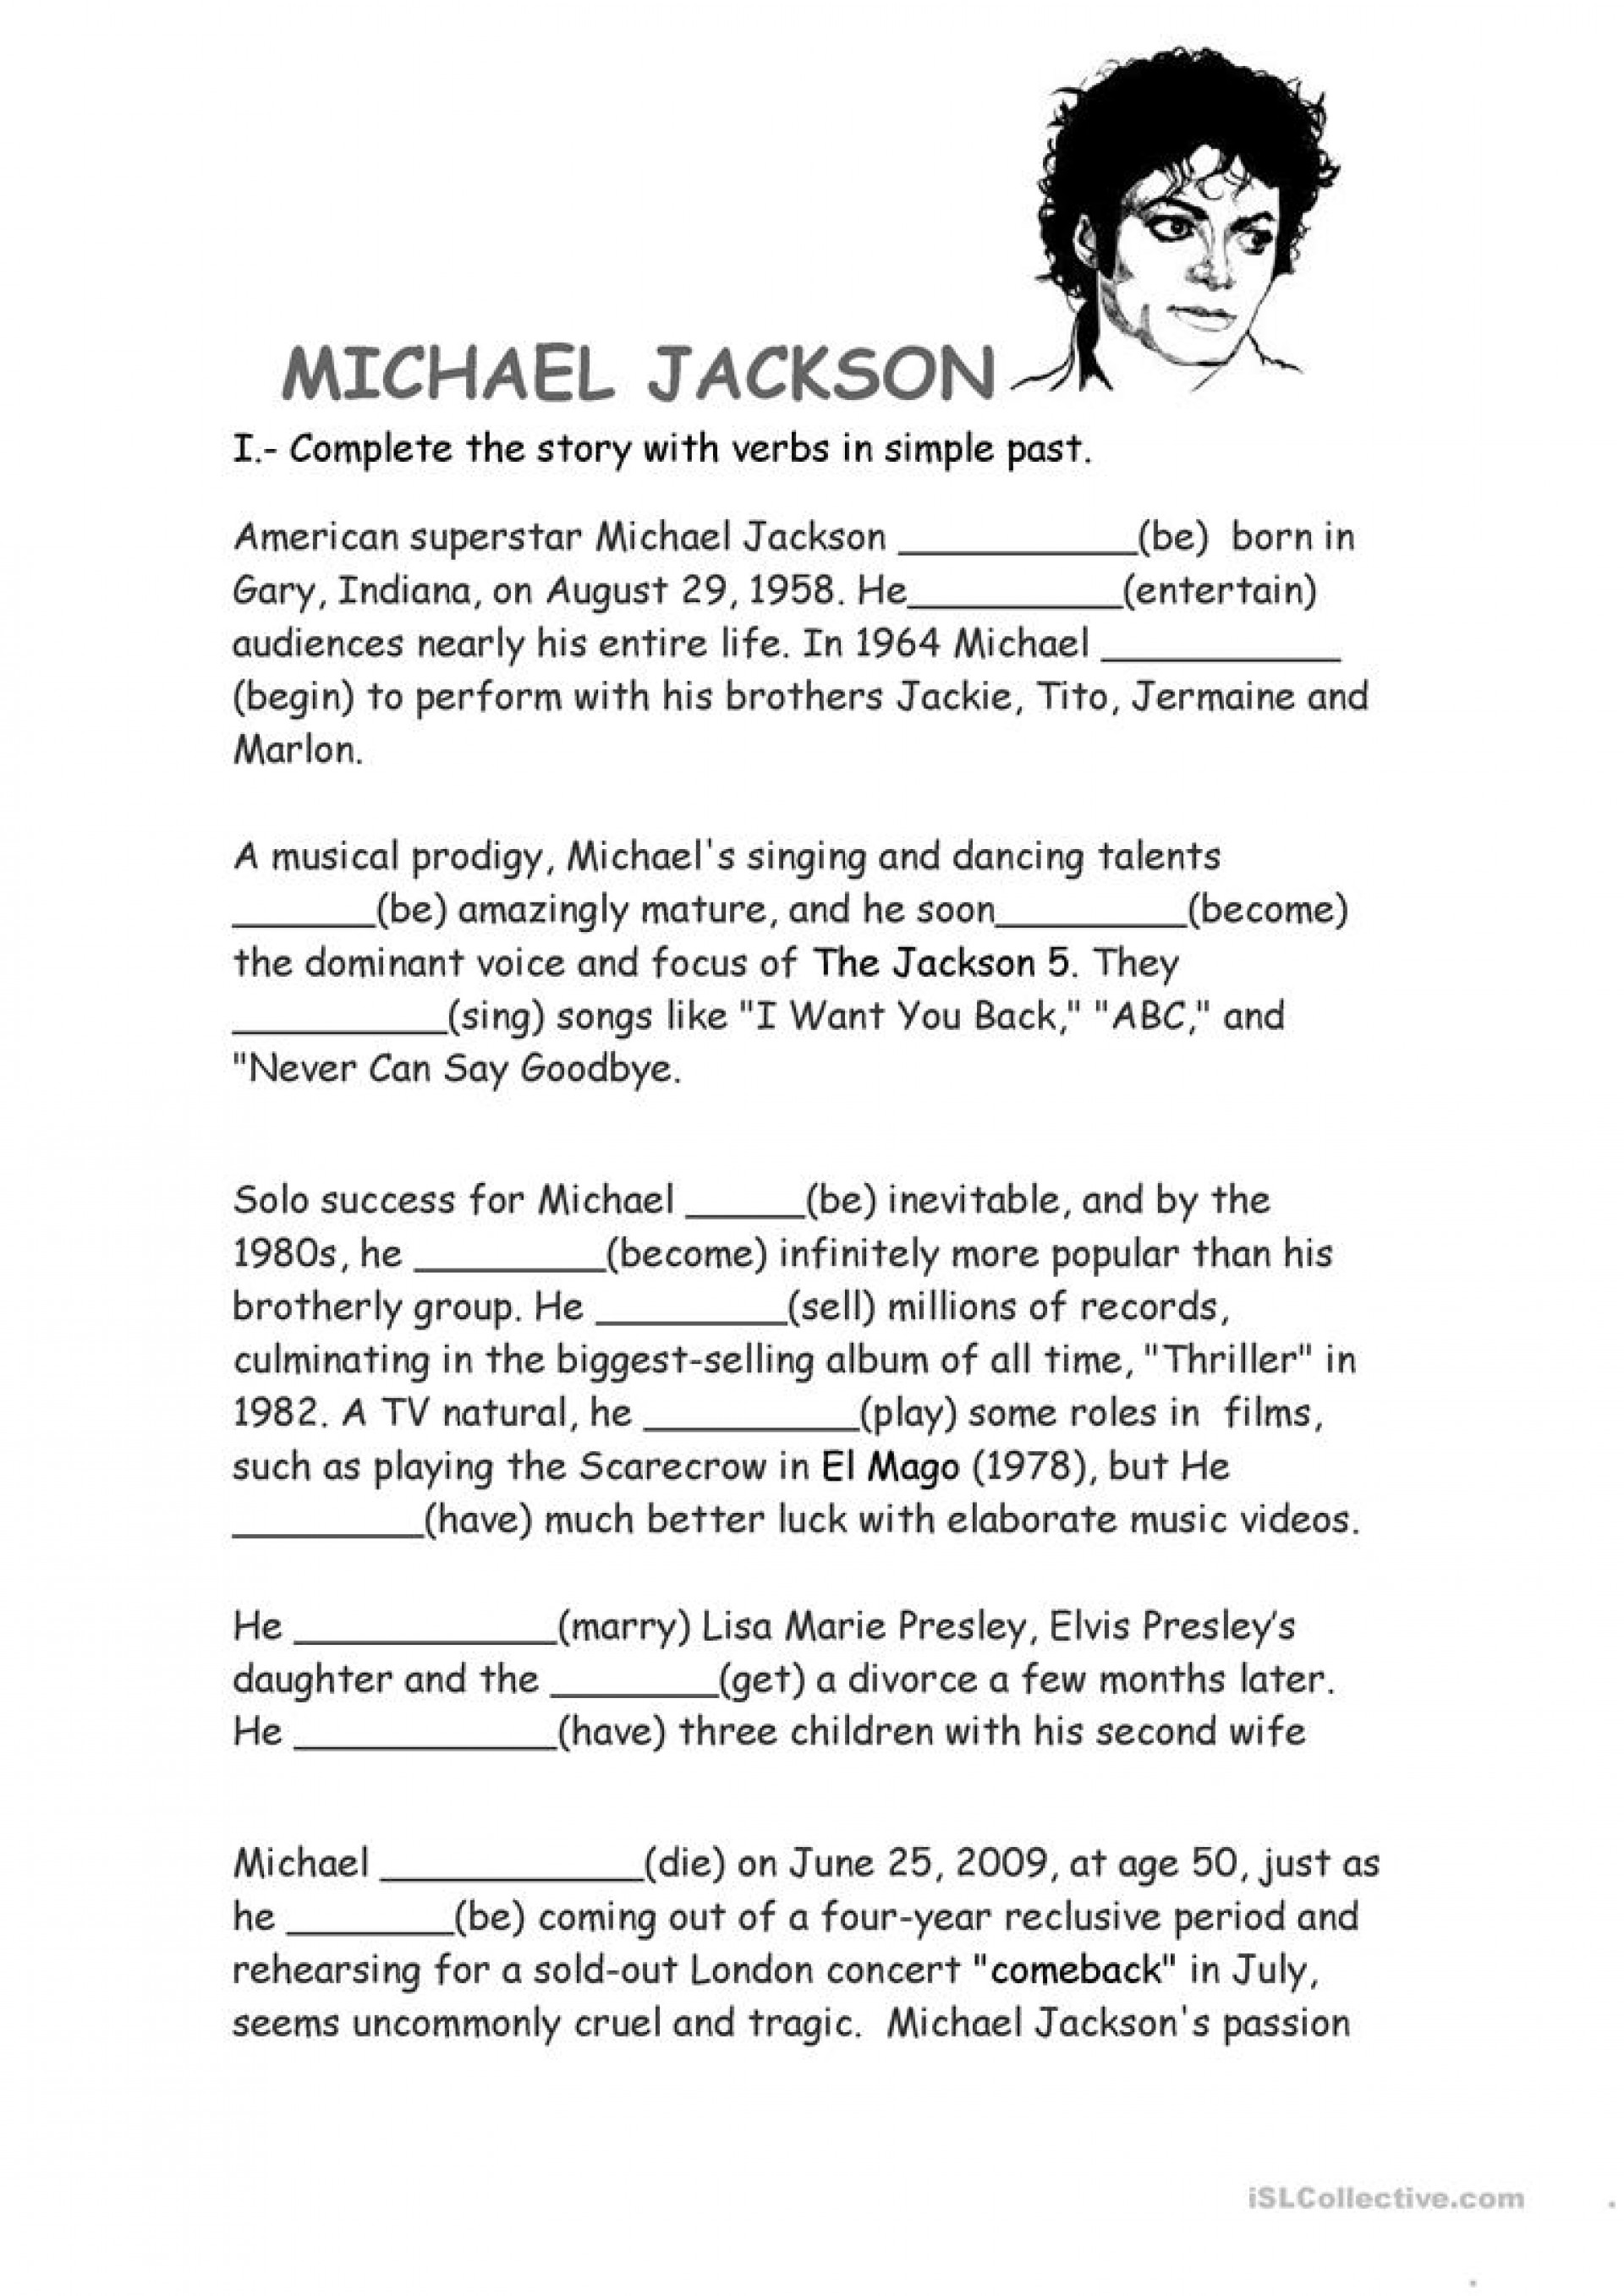 Is A Research Paper An Essay  Science Essay Ideas also Example Of A College Essay Paper  Michaelbjacksonbinspirationalbquotes Jpg Essay  How To Make A Good Thesis Statement For An Essay